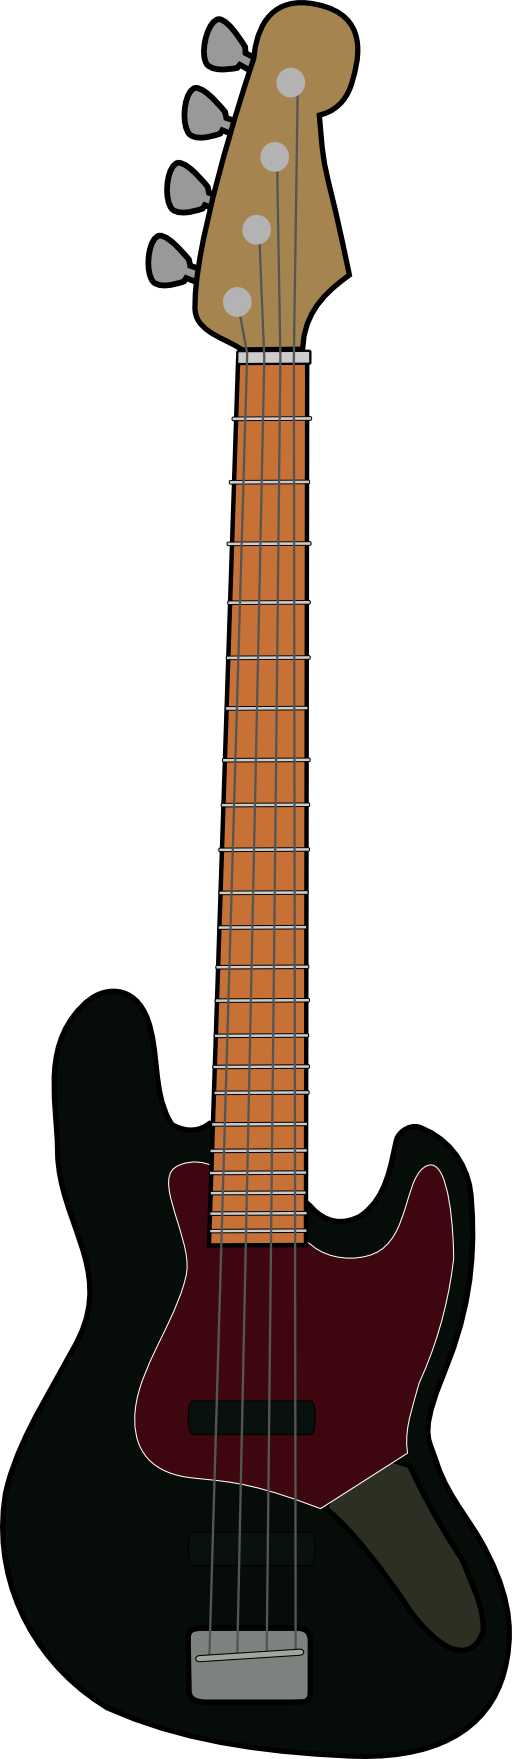 Fender Jazz Bass Clipart I2clipart Royalty Free Public Domain